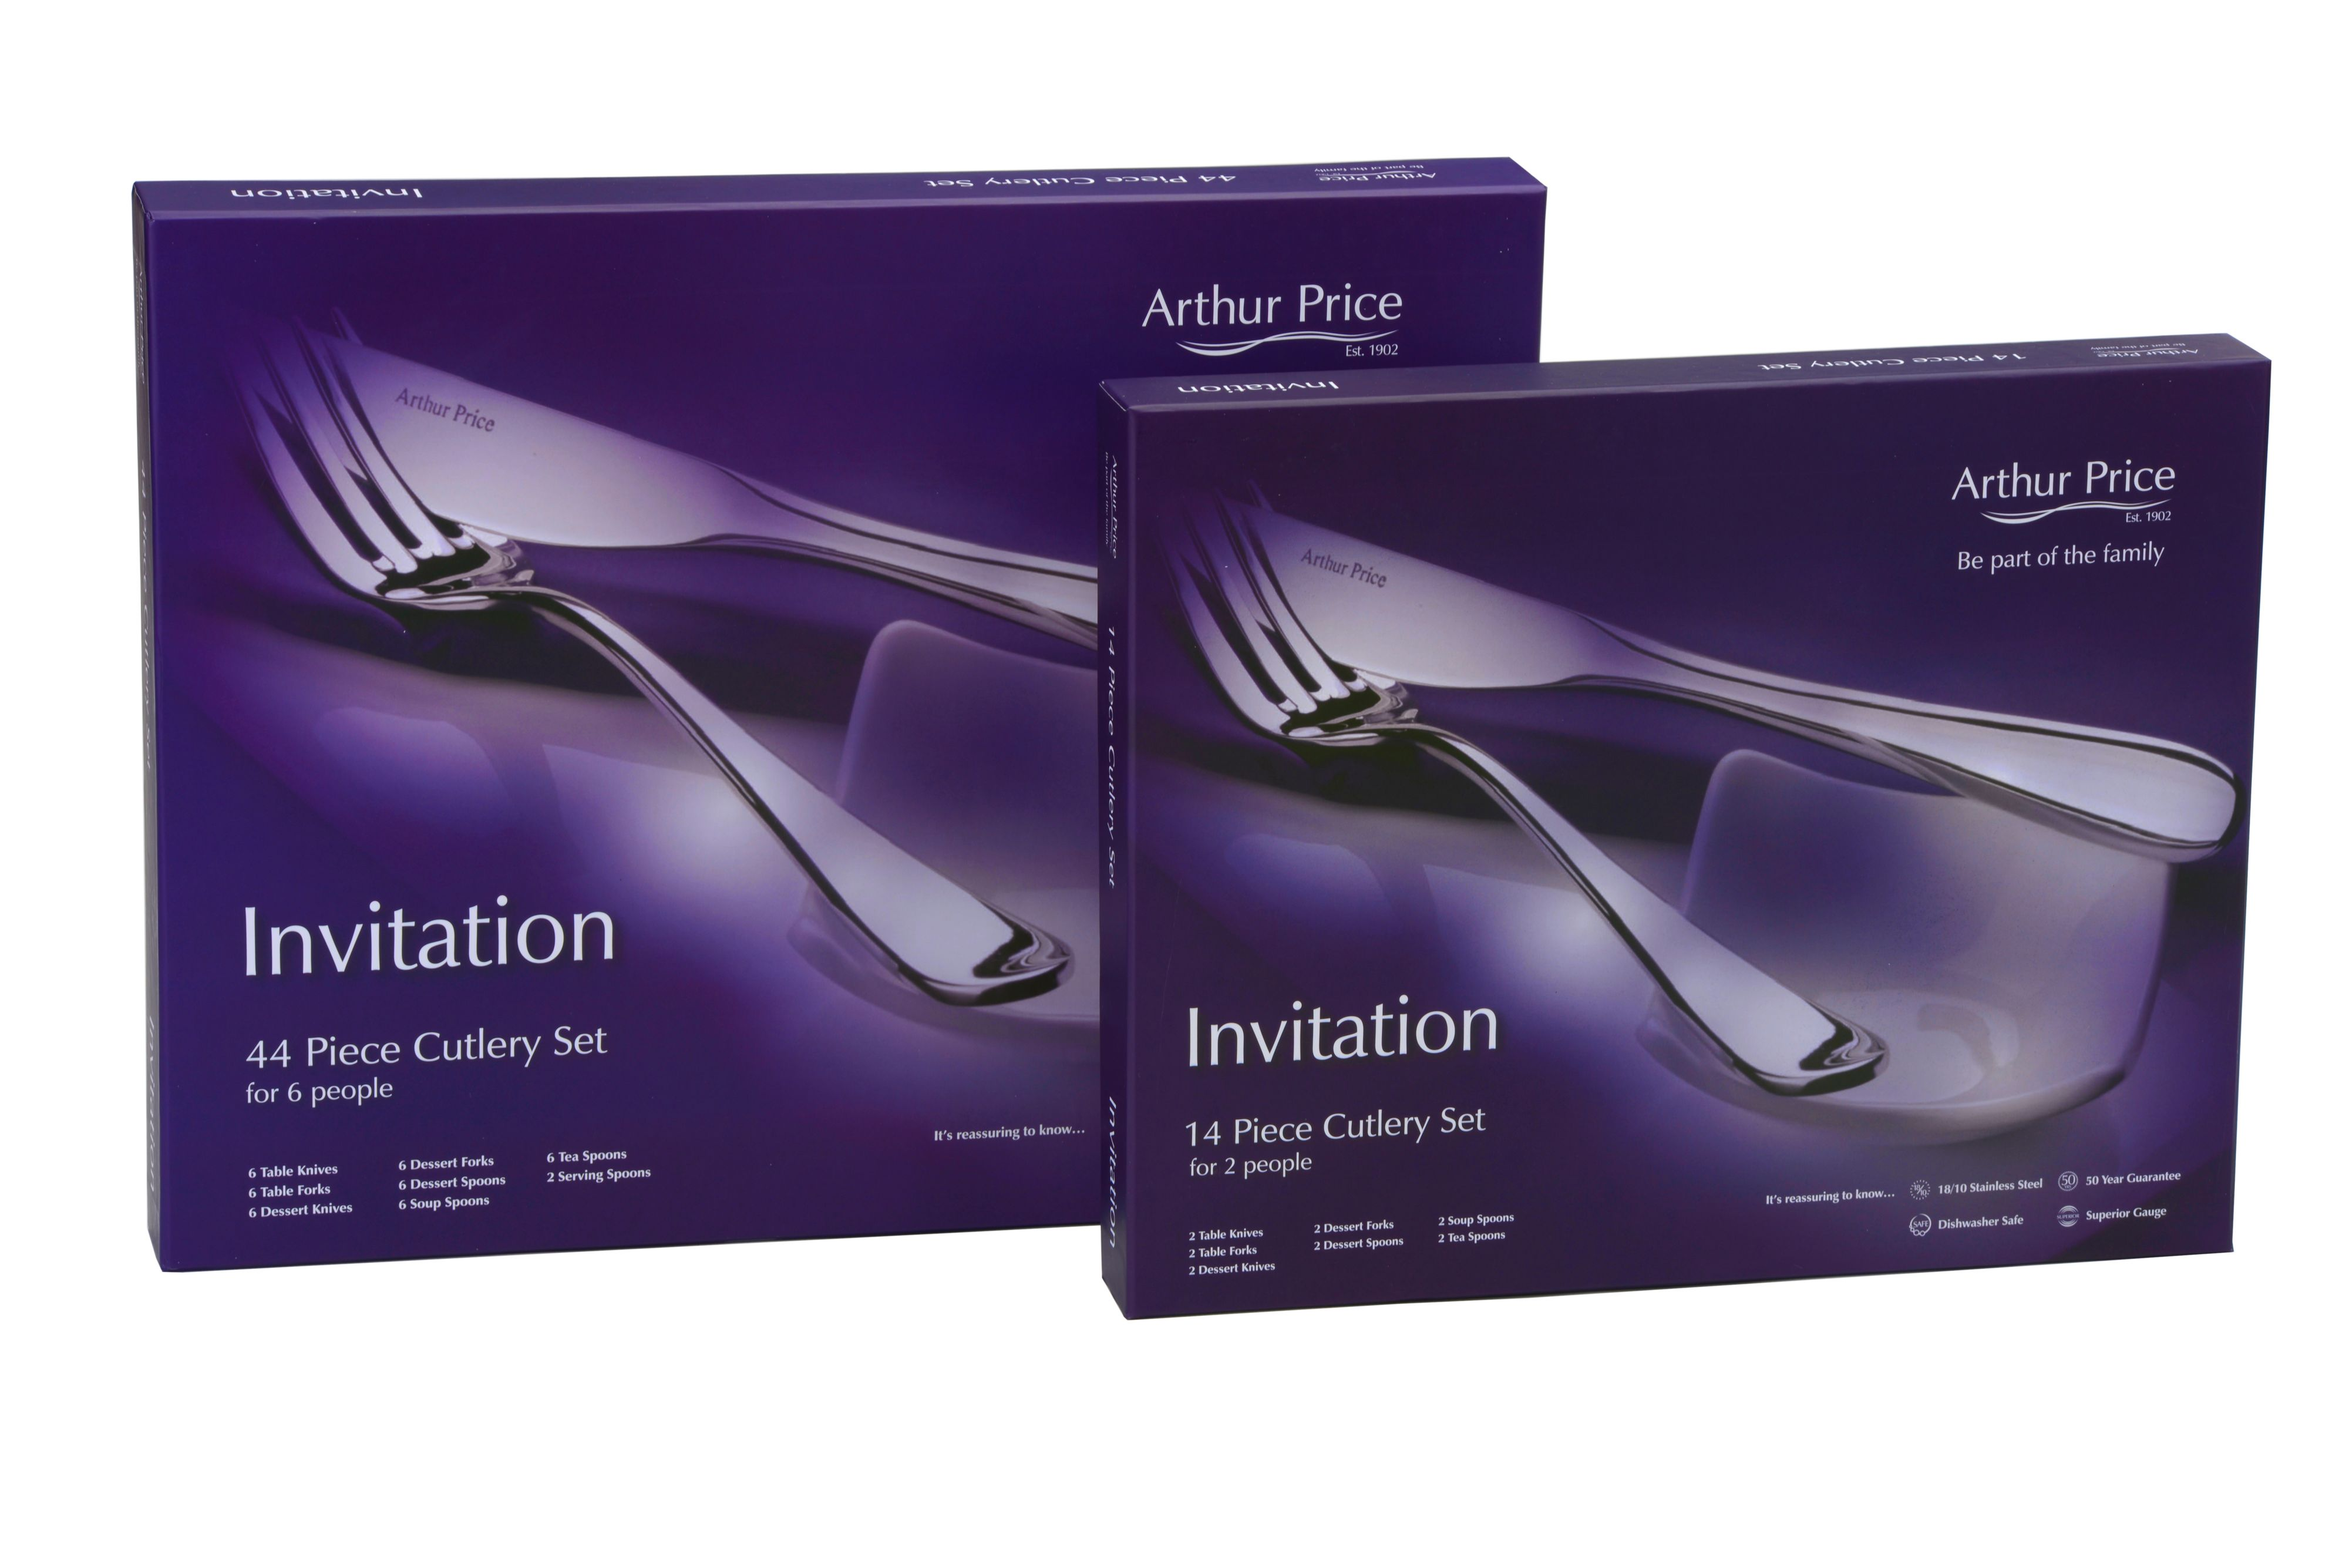 Invitation 14 piece cutlery set